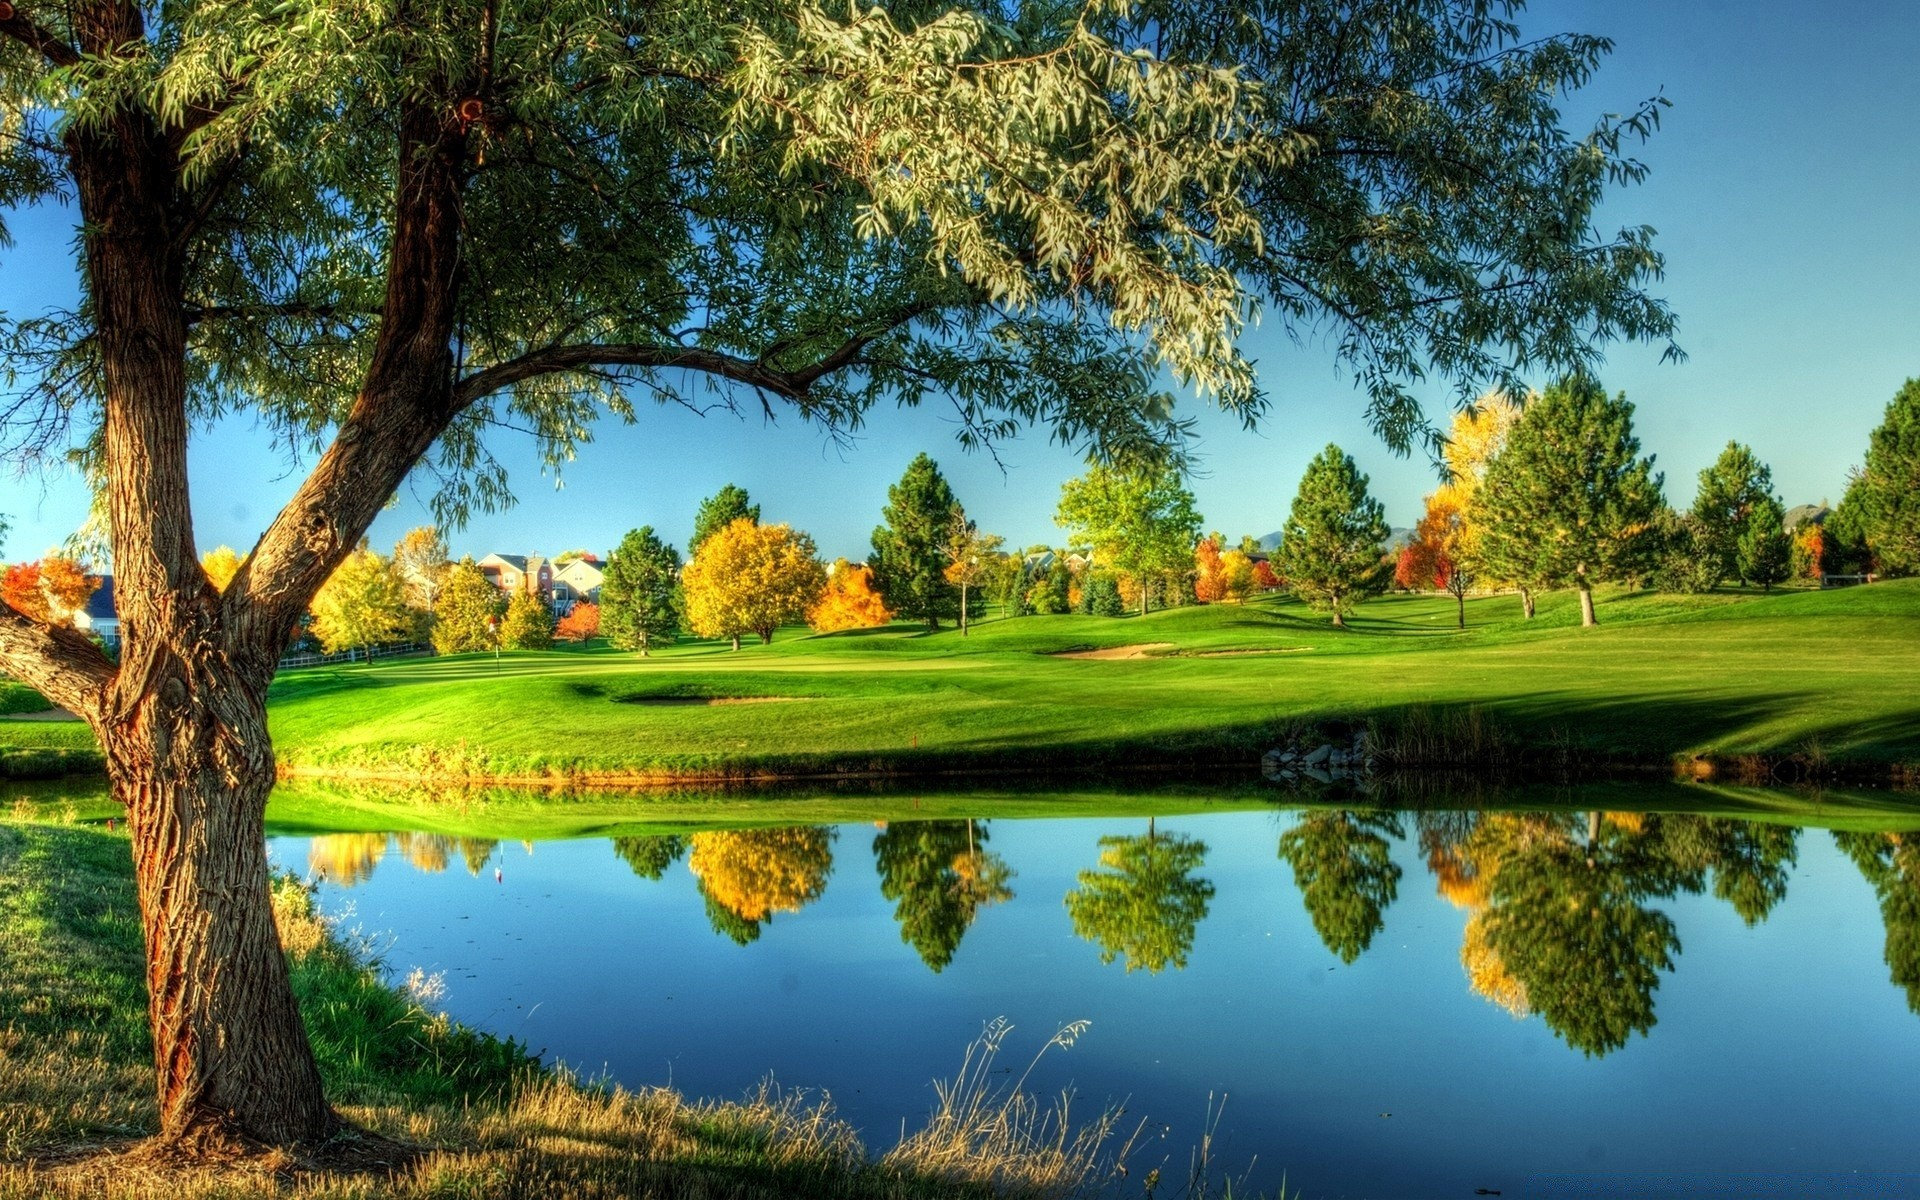 golf tree grass landscape nature lake sky scenic outdoors summer reflection pool park wood water hayfield sight rural cloud river